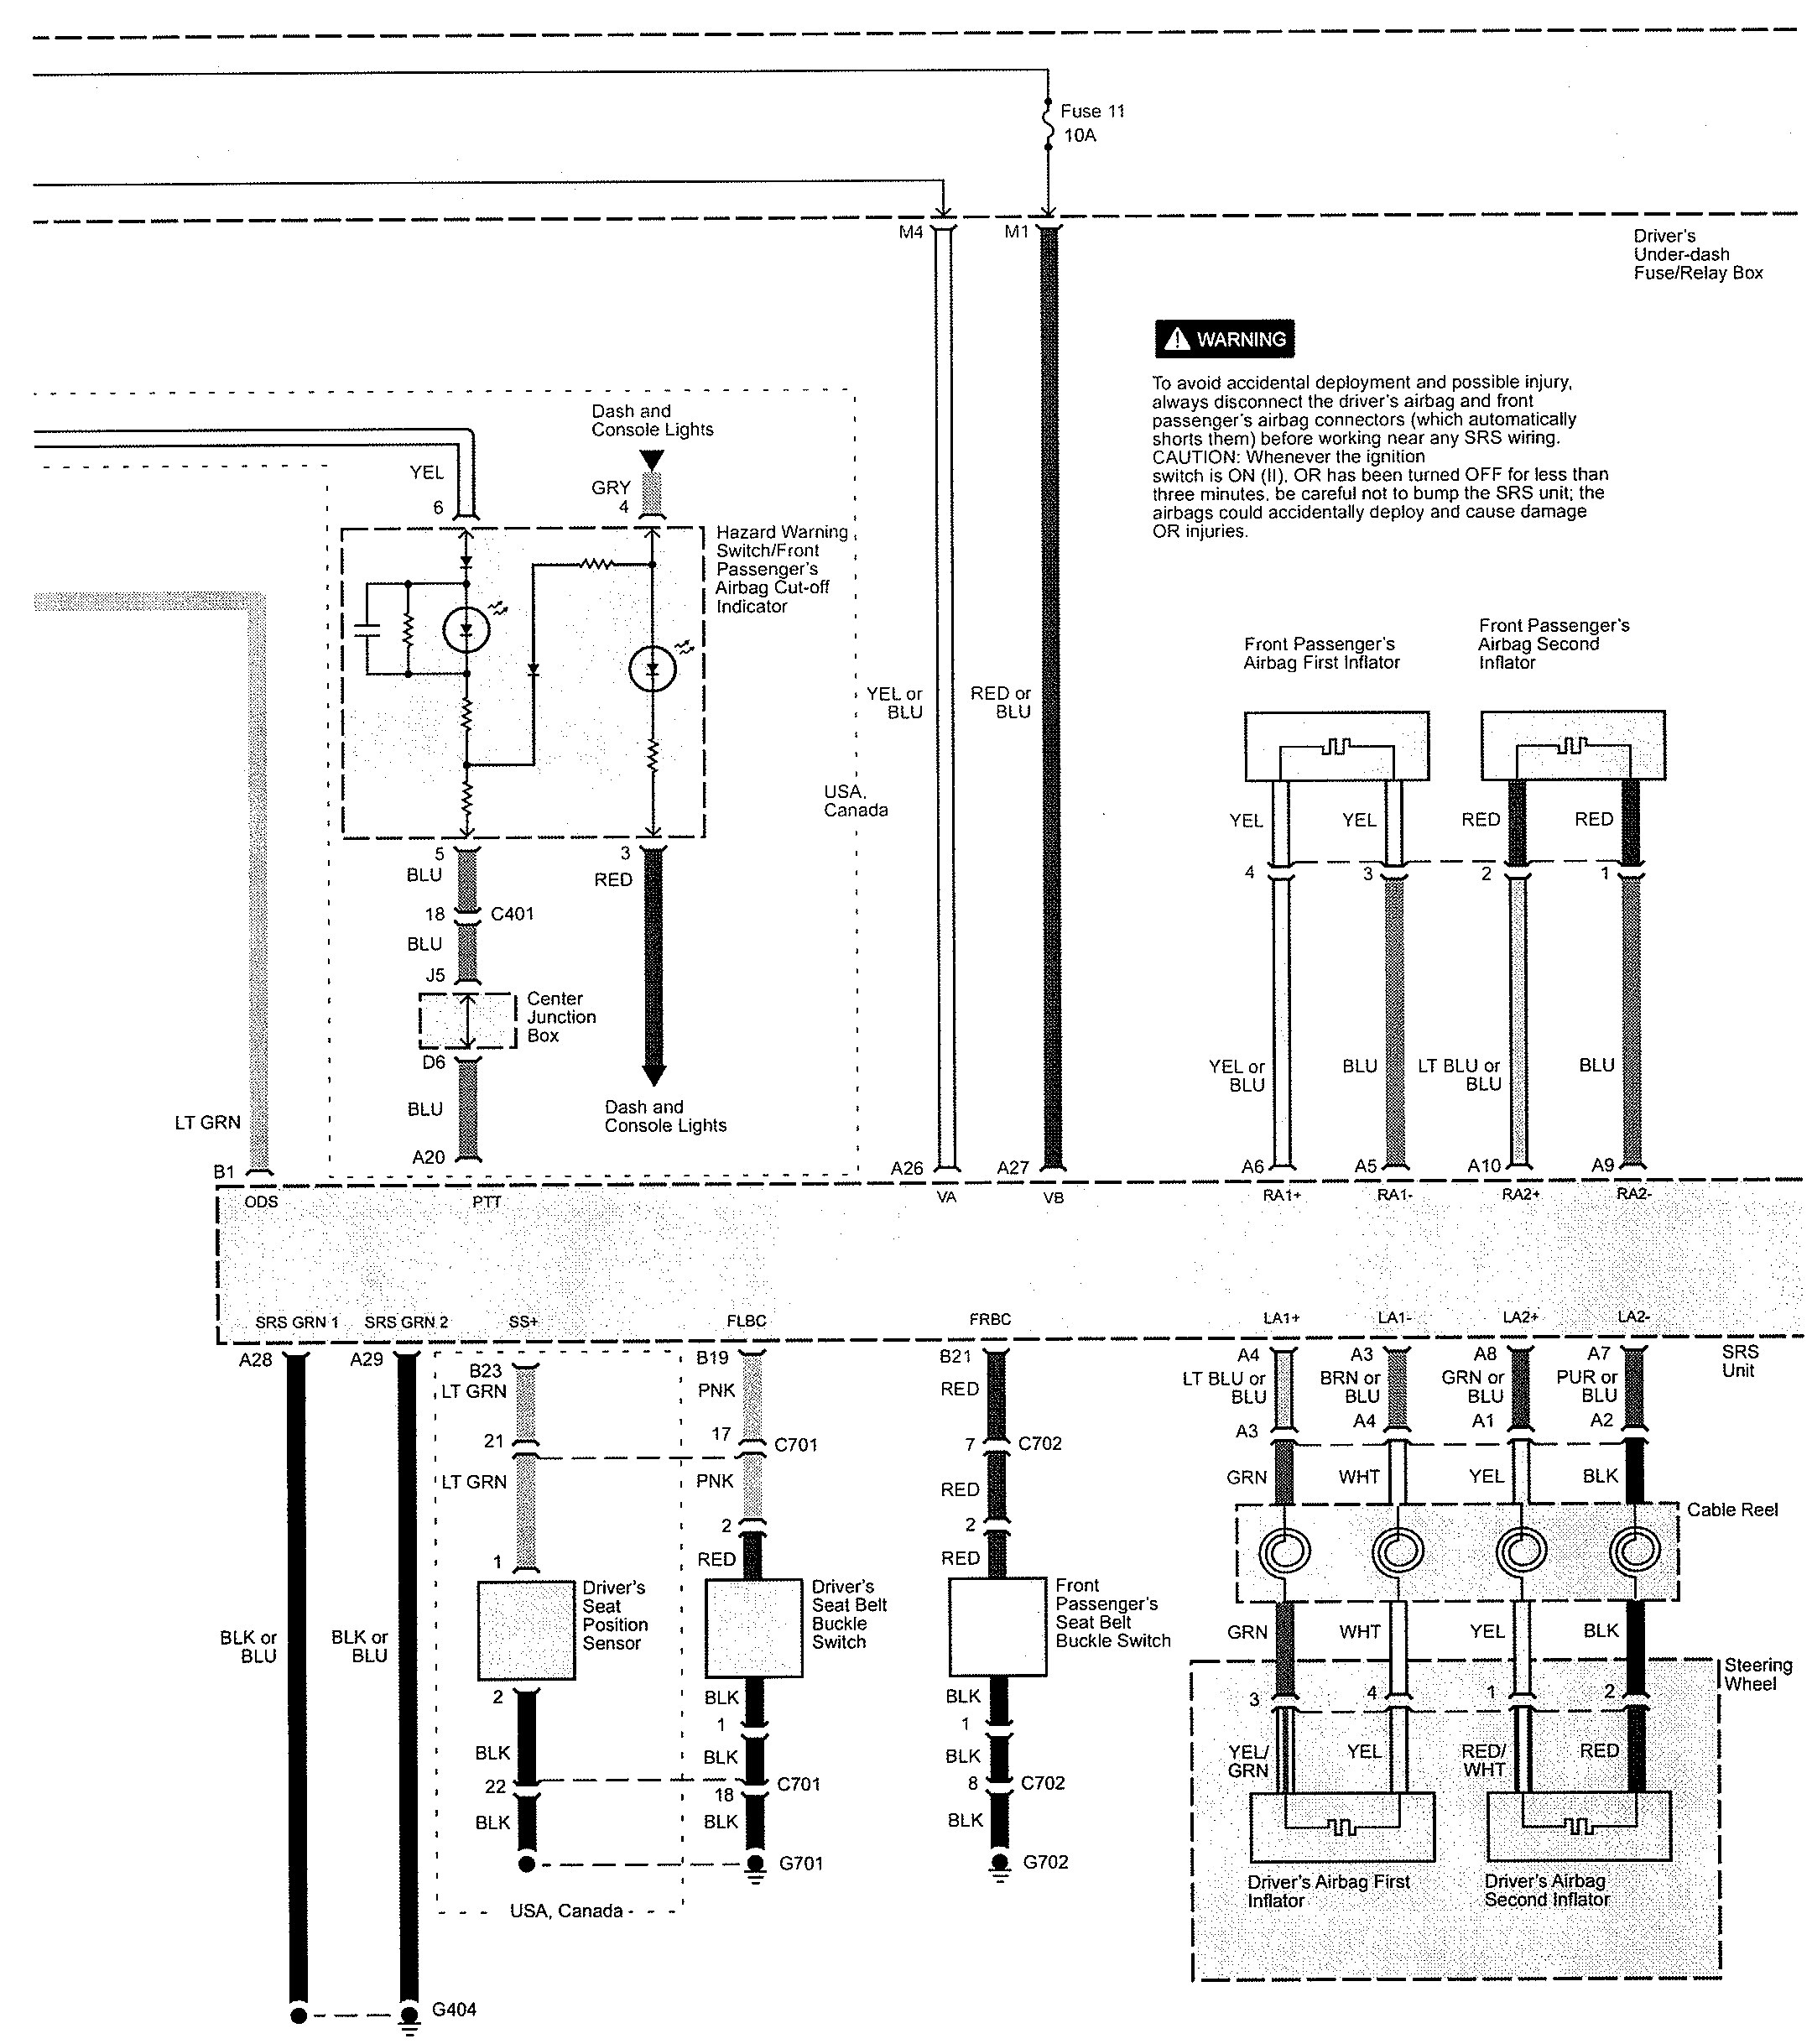 2006 Buick Rainier Wiring Diagrams. Buick. Auto Wiring Diagram